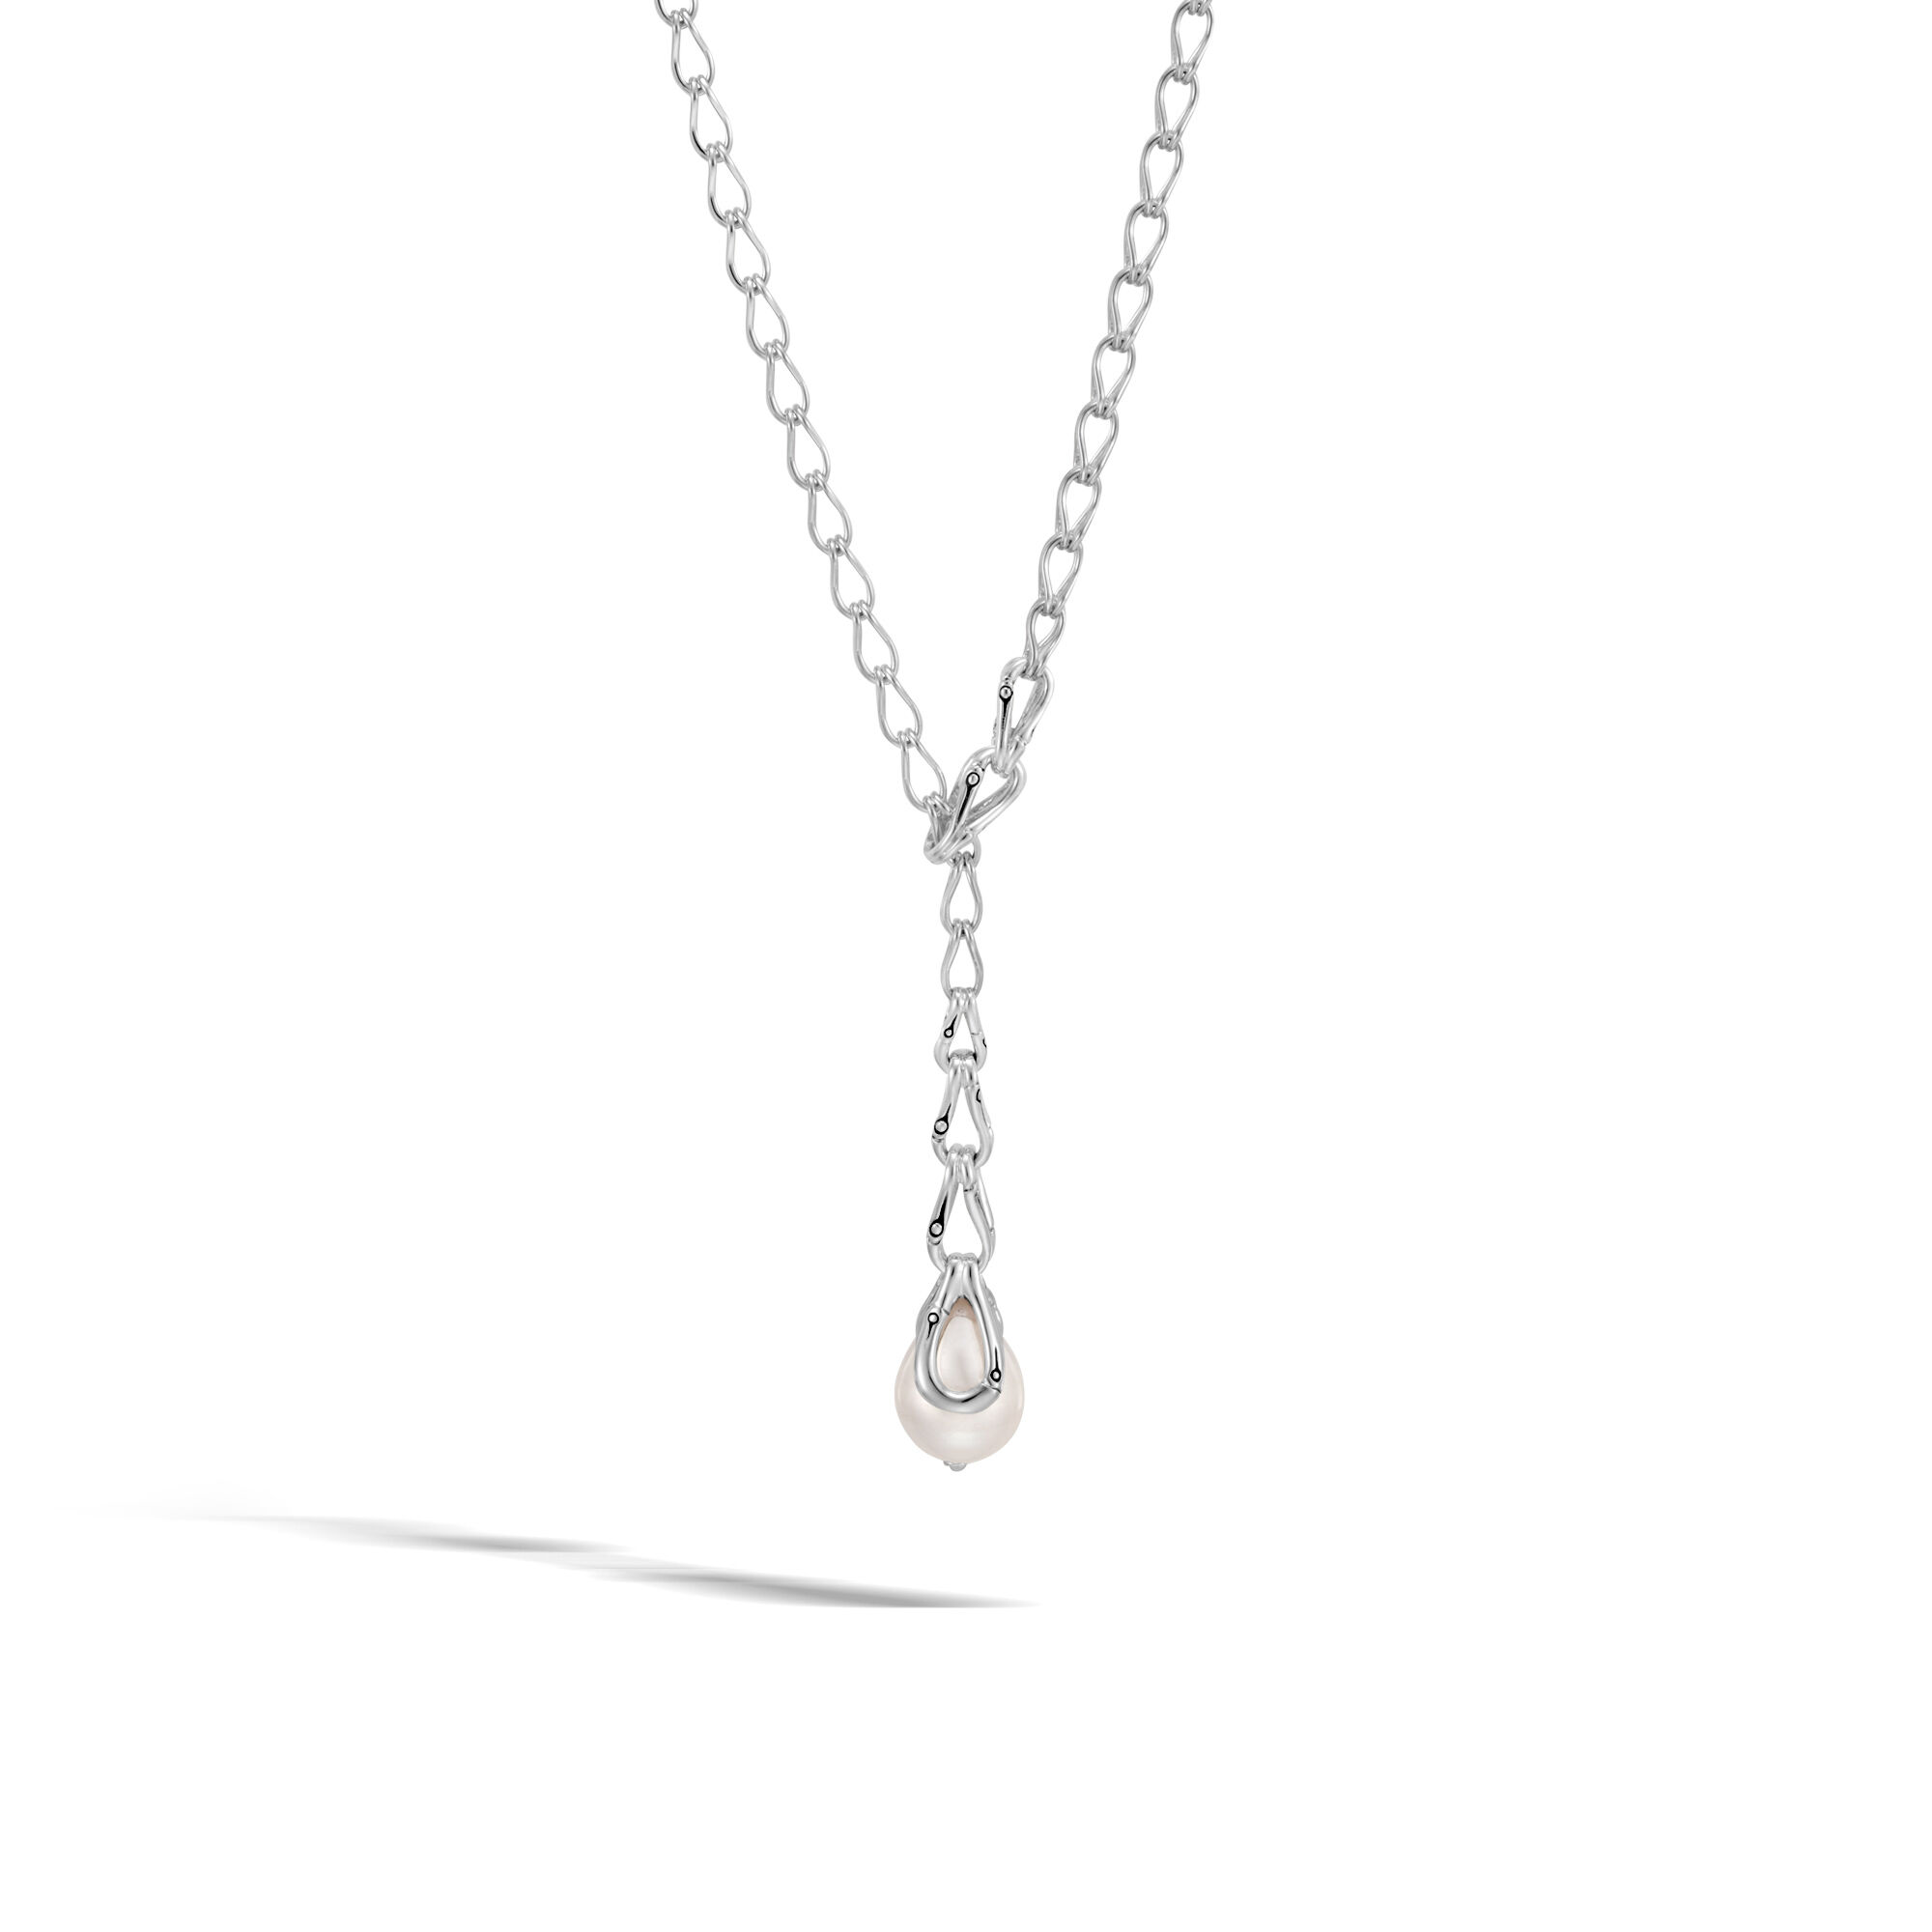 John Hardy Bamboo Graduated Silver Necklace, 17L